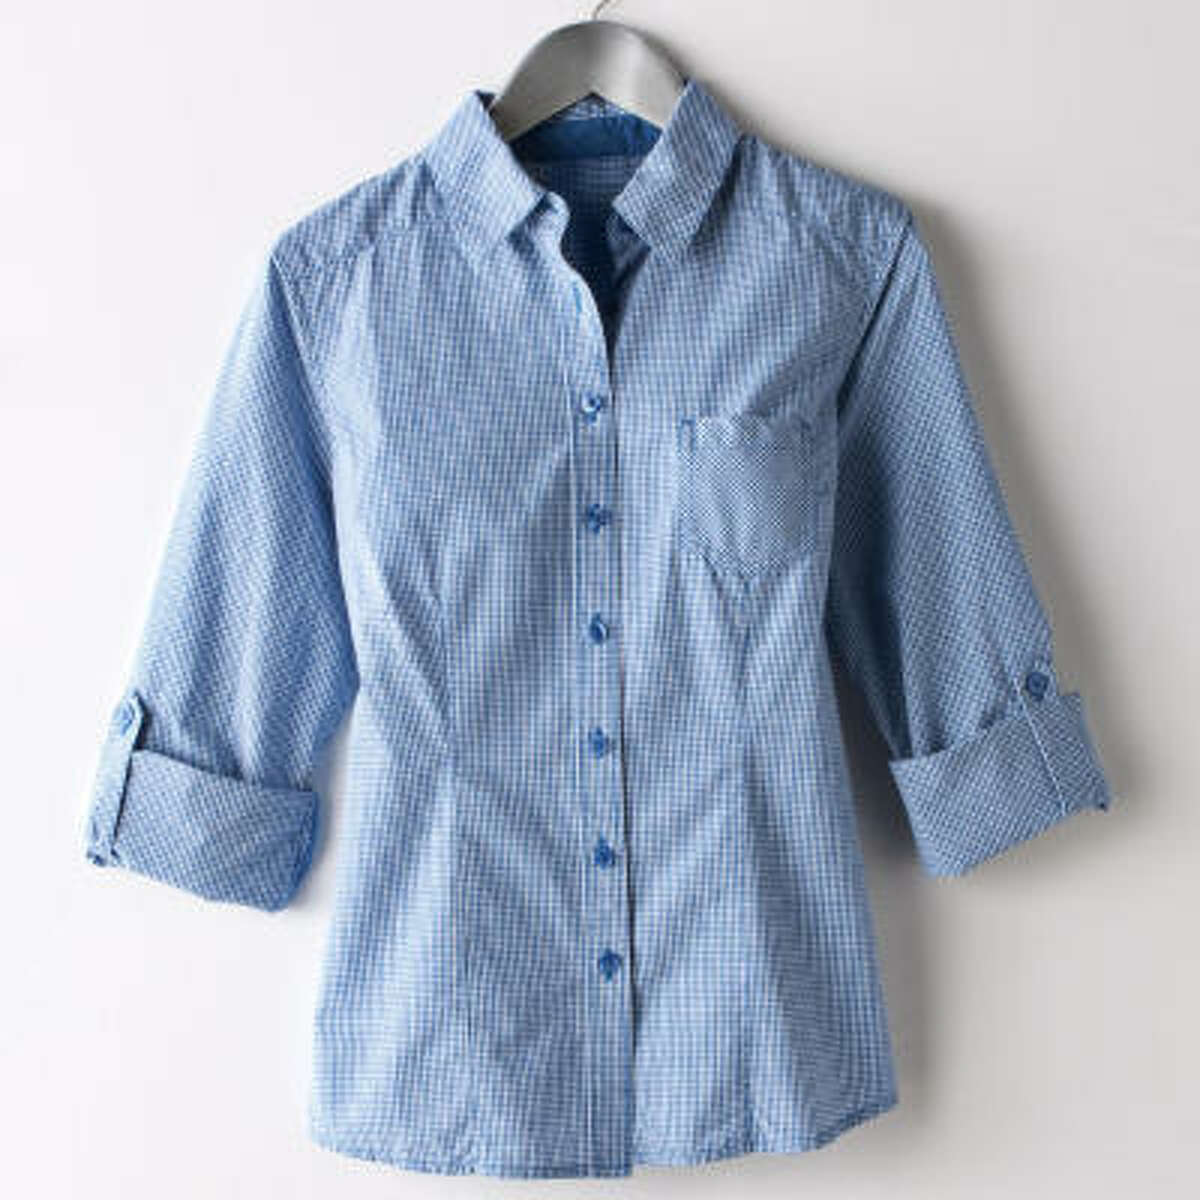 This checkered poplin shirt goes great with khakis or jeans; $30.